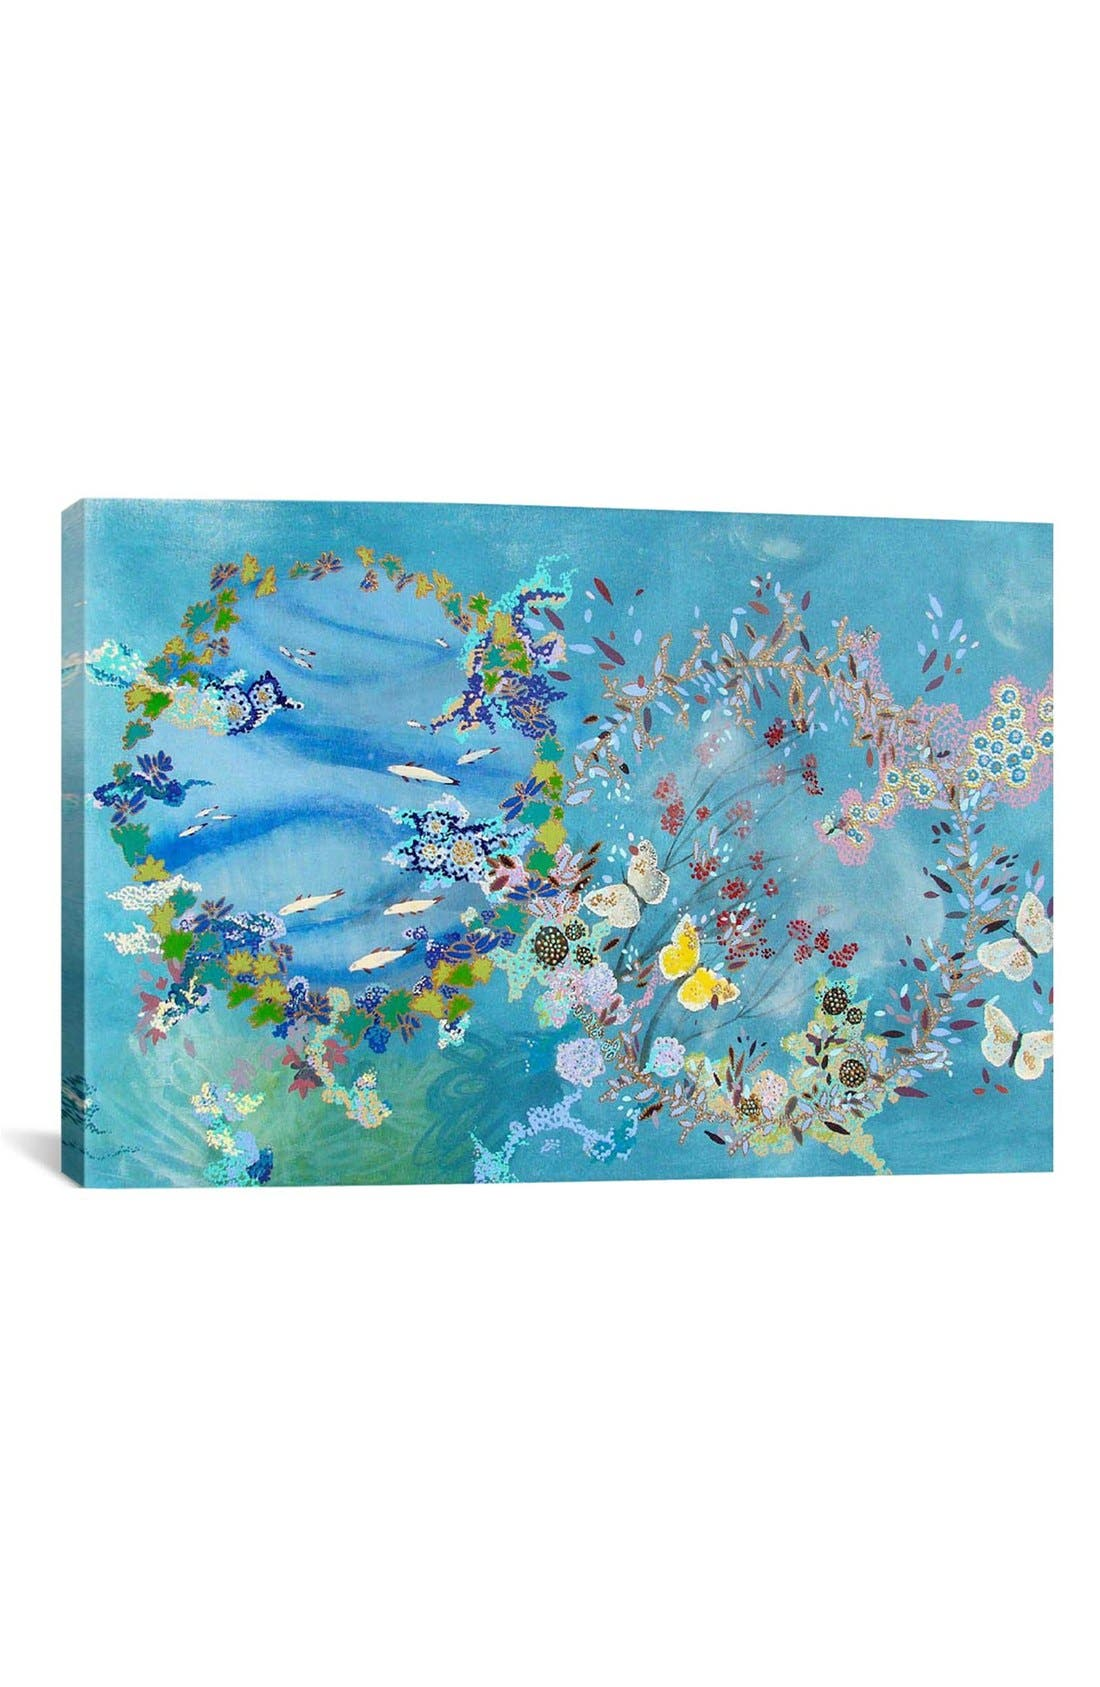 'Agua Y Aire - Lia Porto' Giclée Print Canvas Art,                         Main,                         color, Blue/ Multi